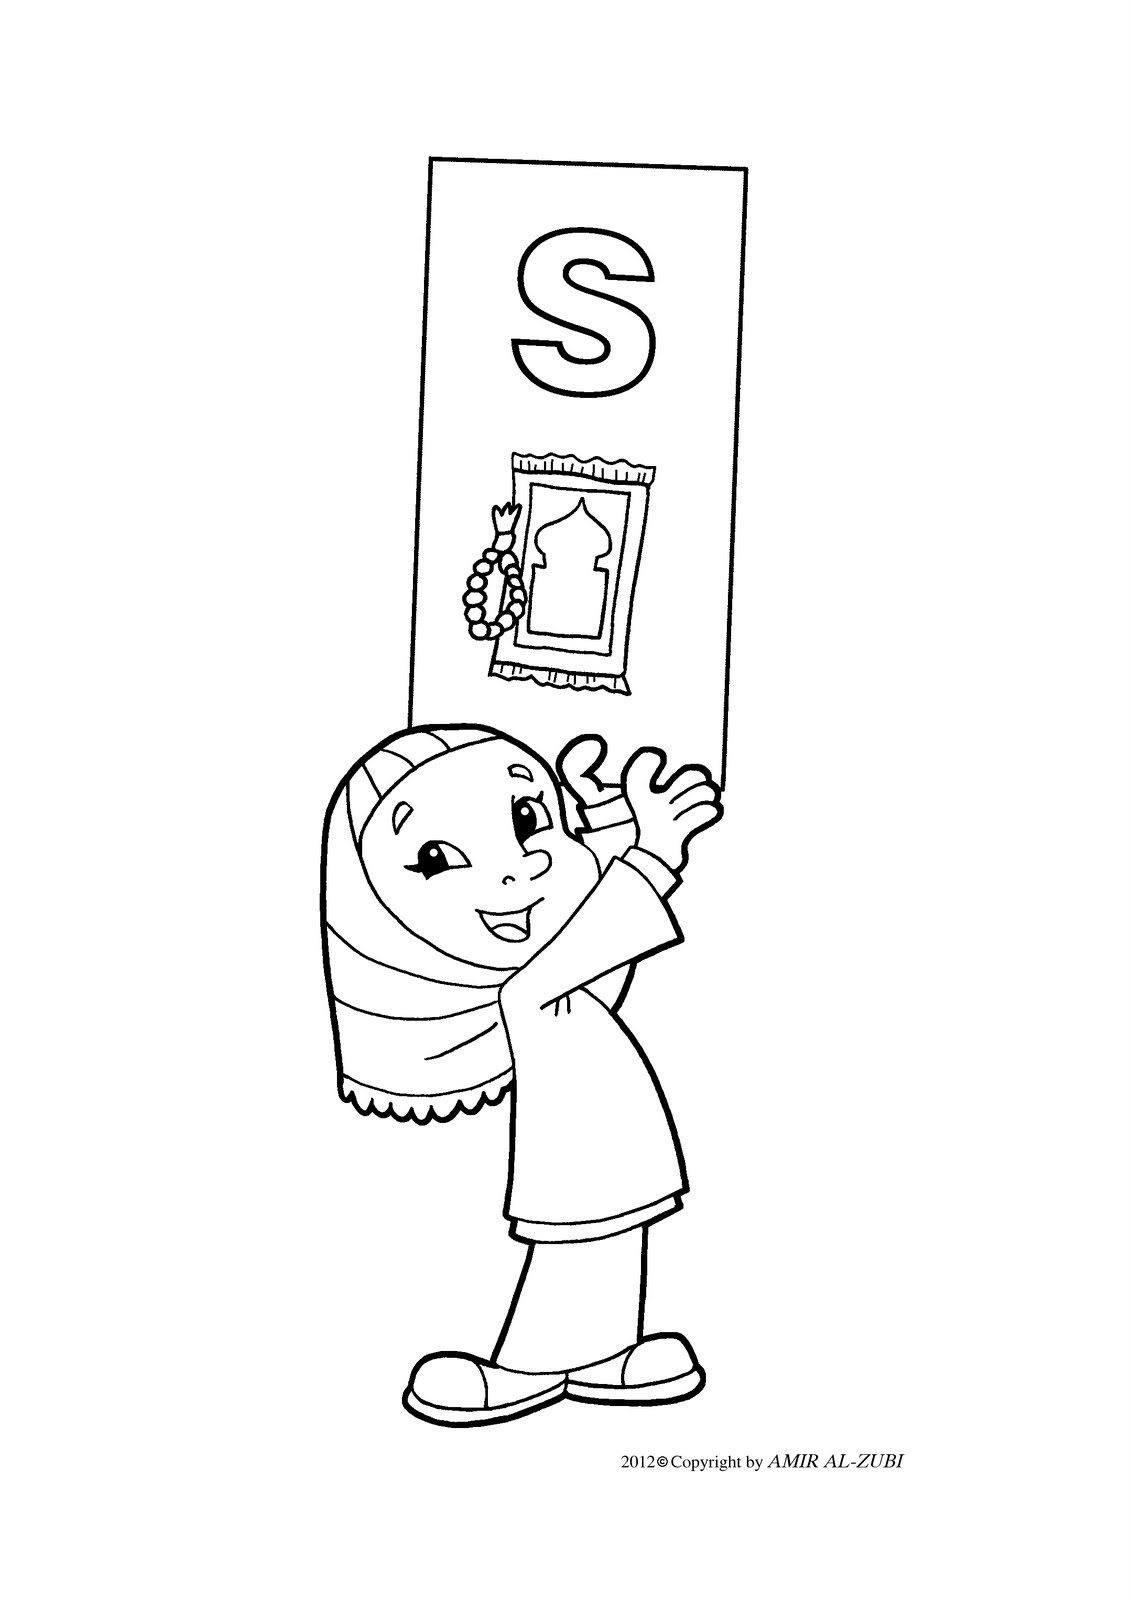 New Muslim Kids: S - Coloring Pages